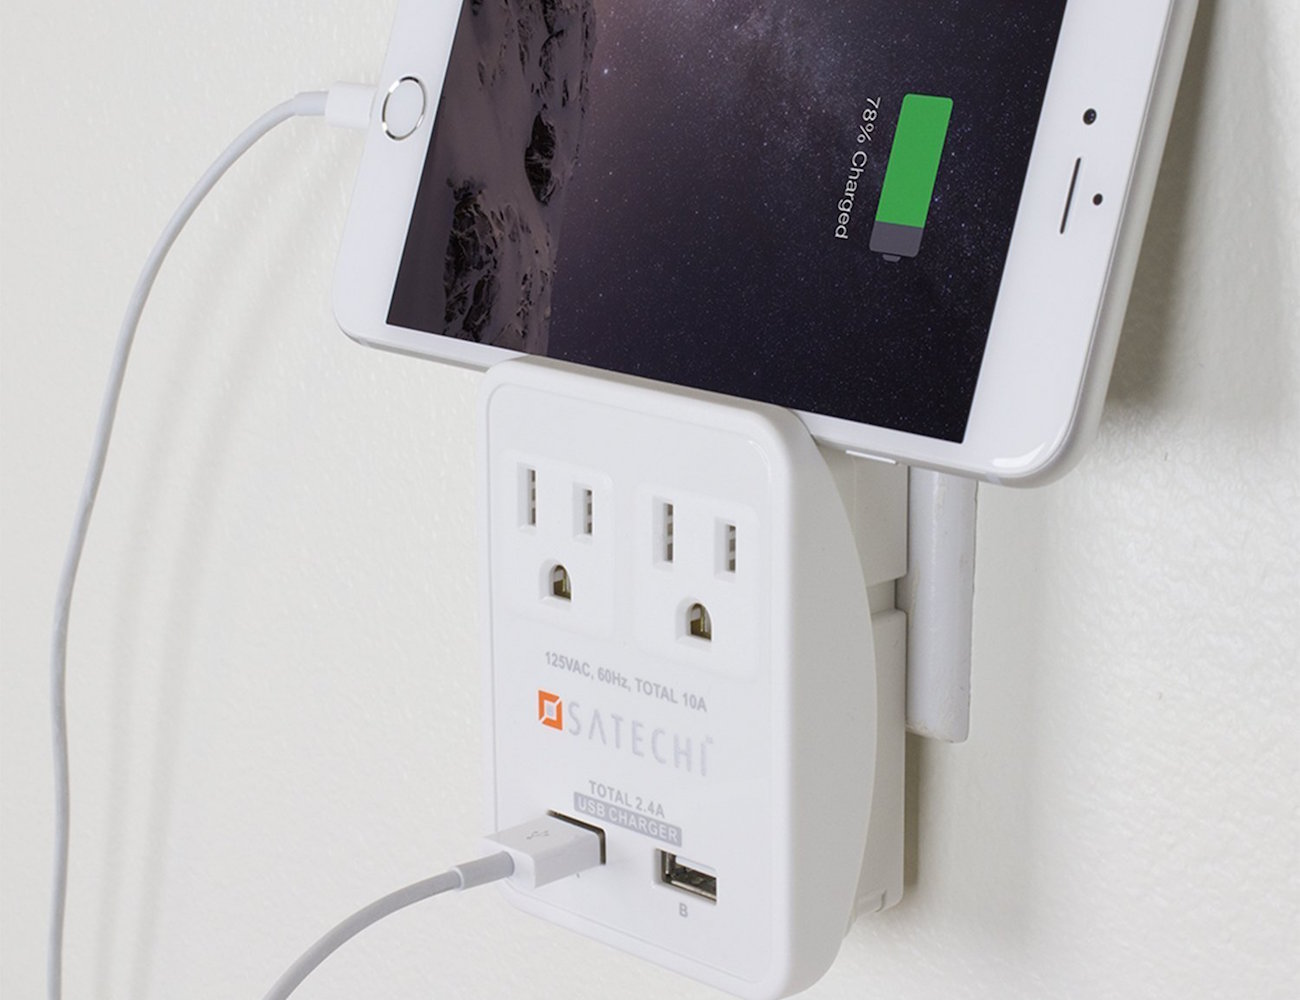 Satechi Dual Compact USB Travel Charger